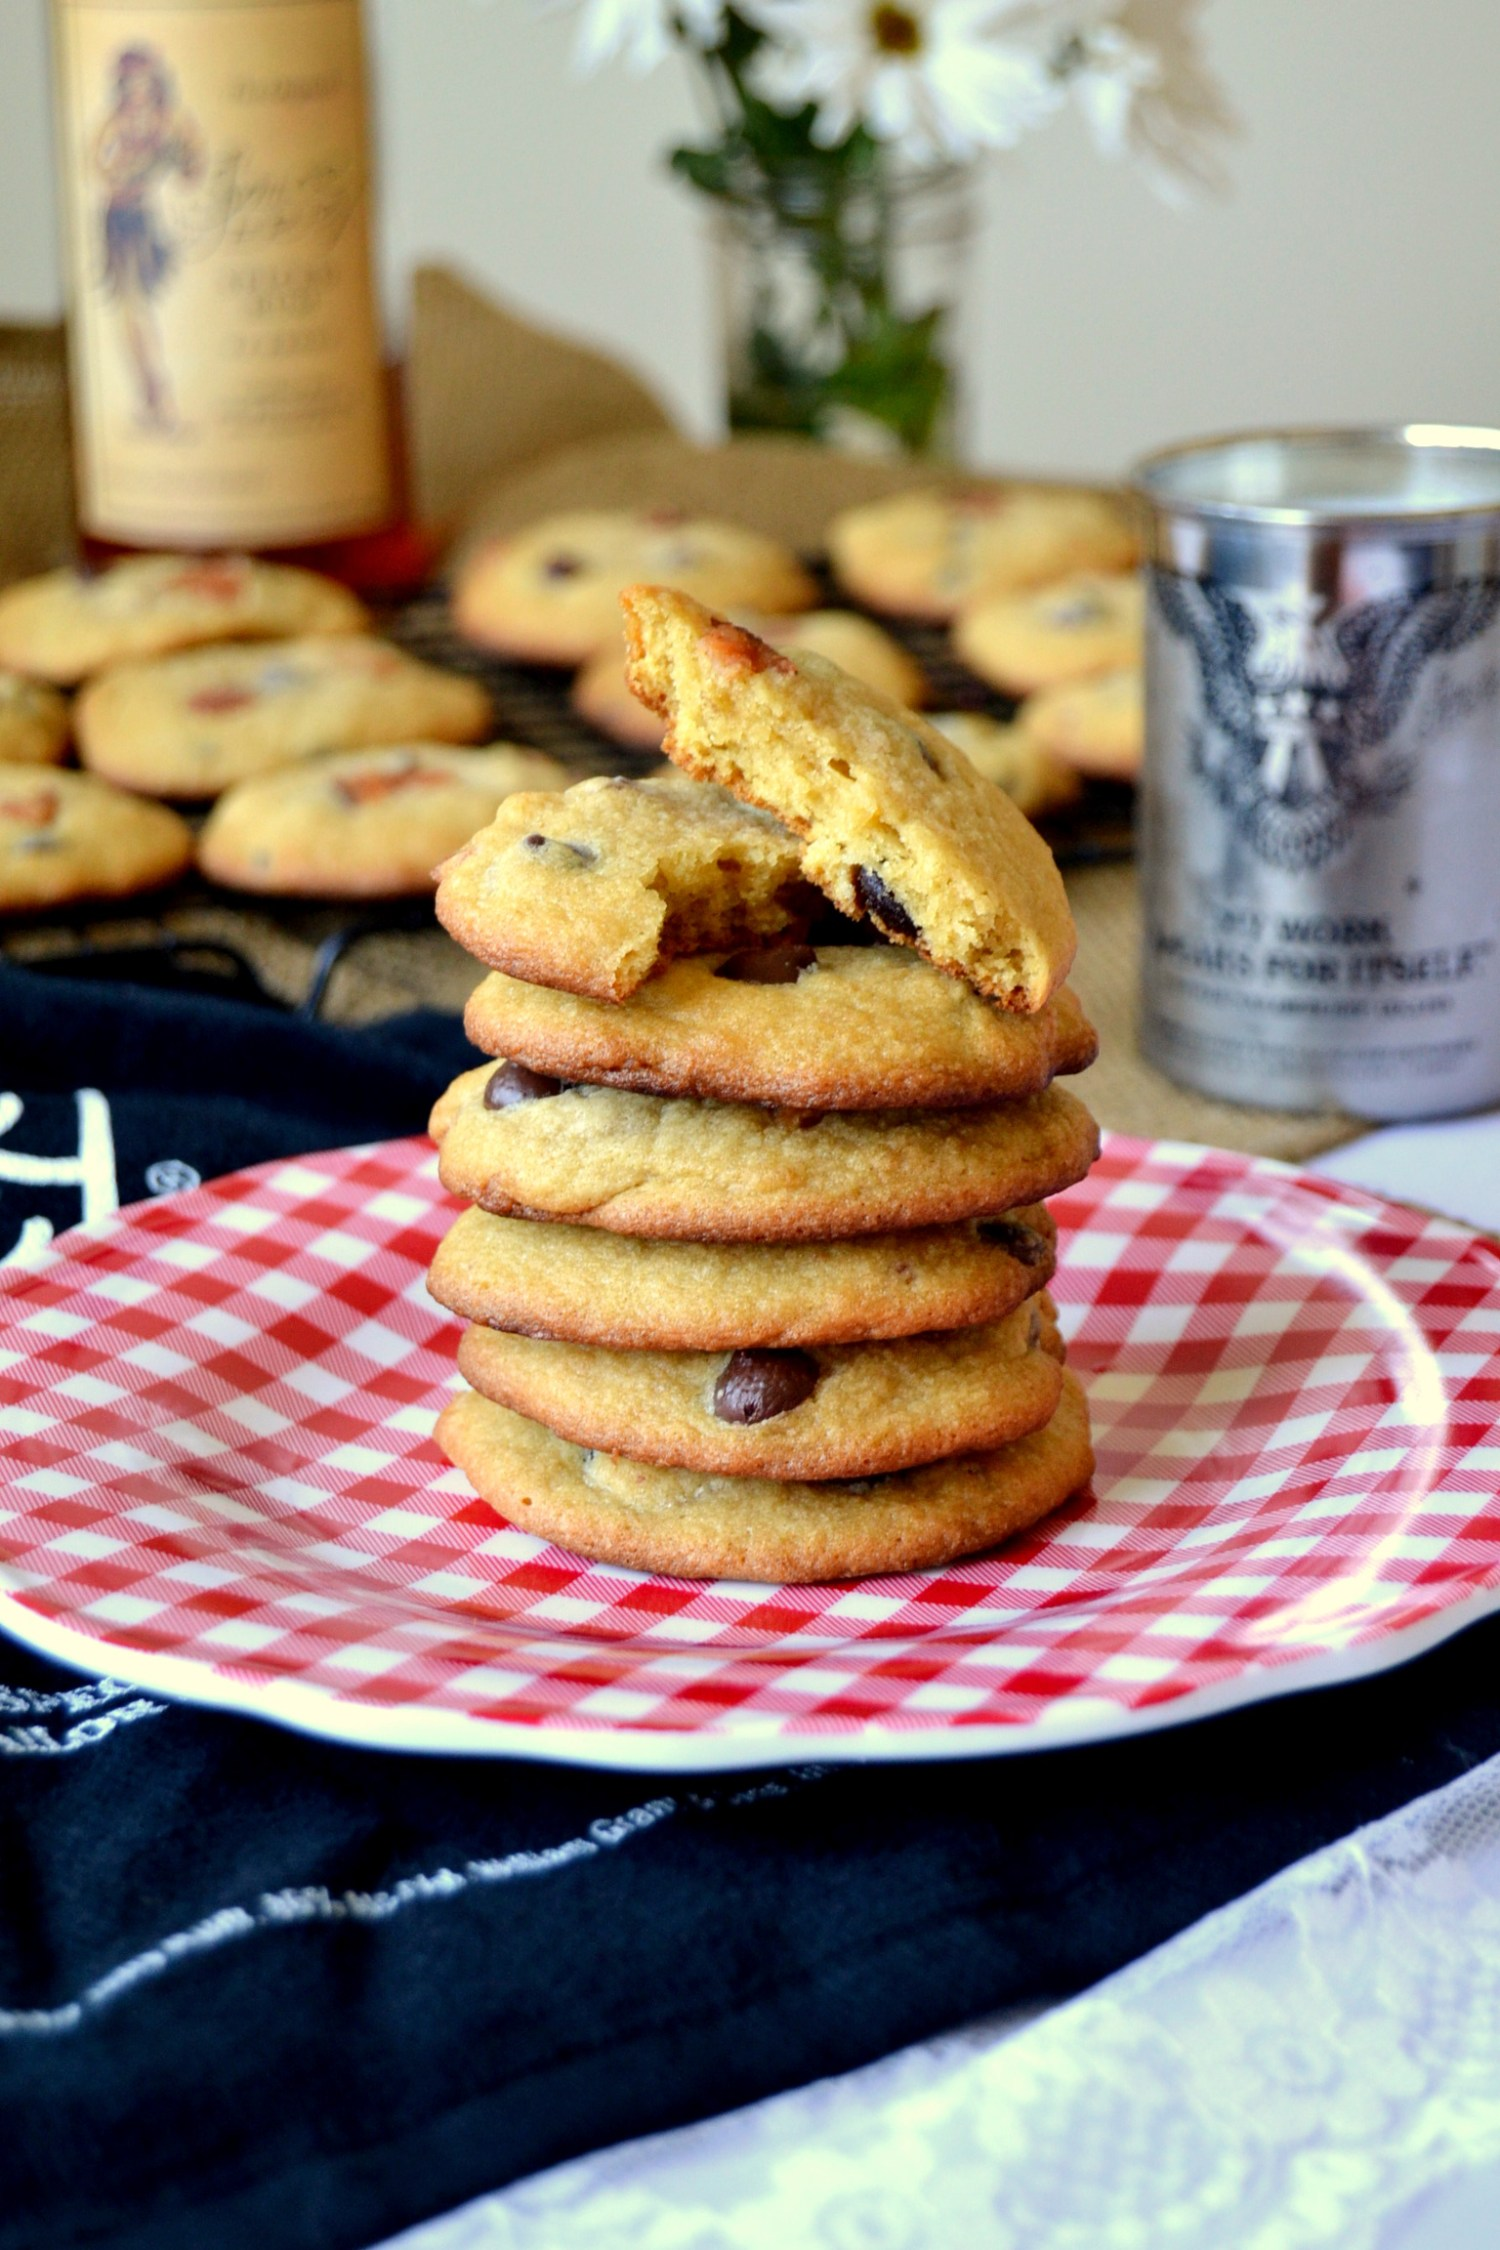 Sailor Spiked Bacon and Chocolate Chip Cookies